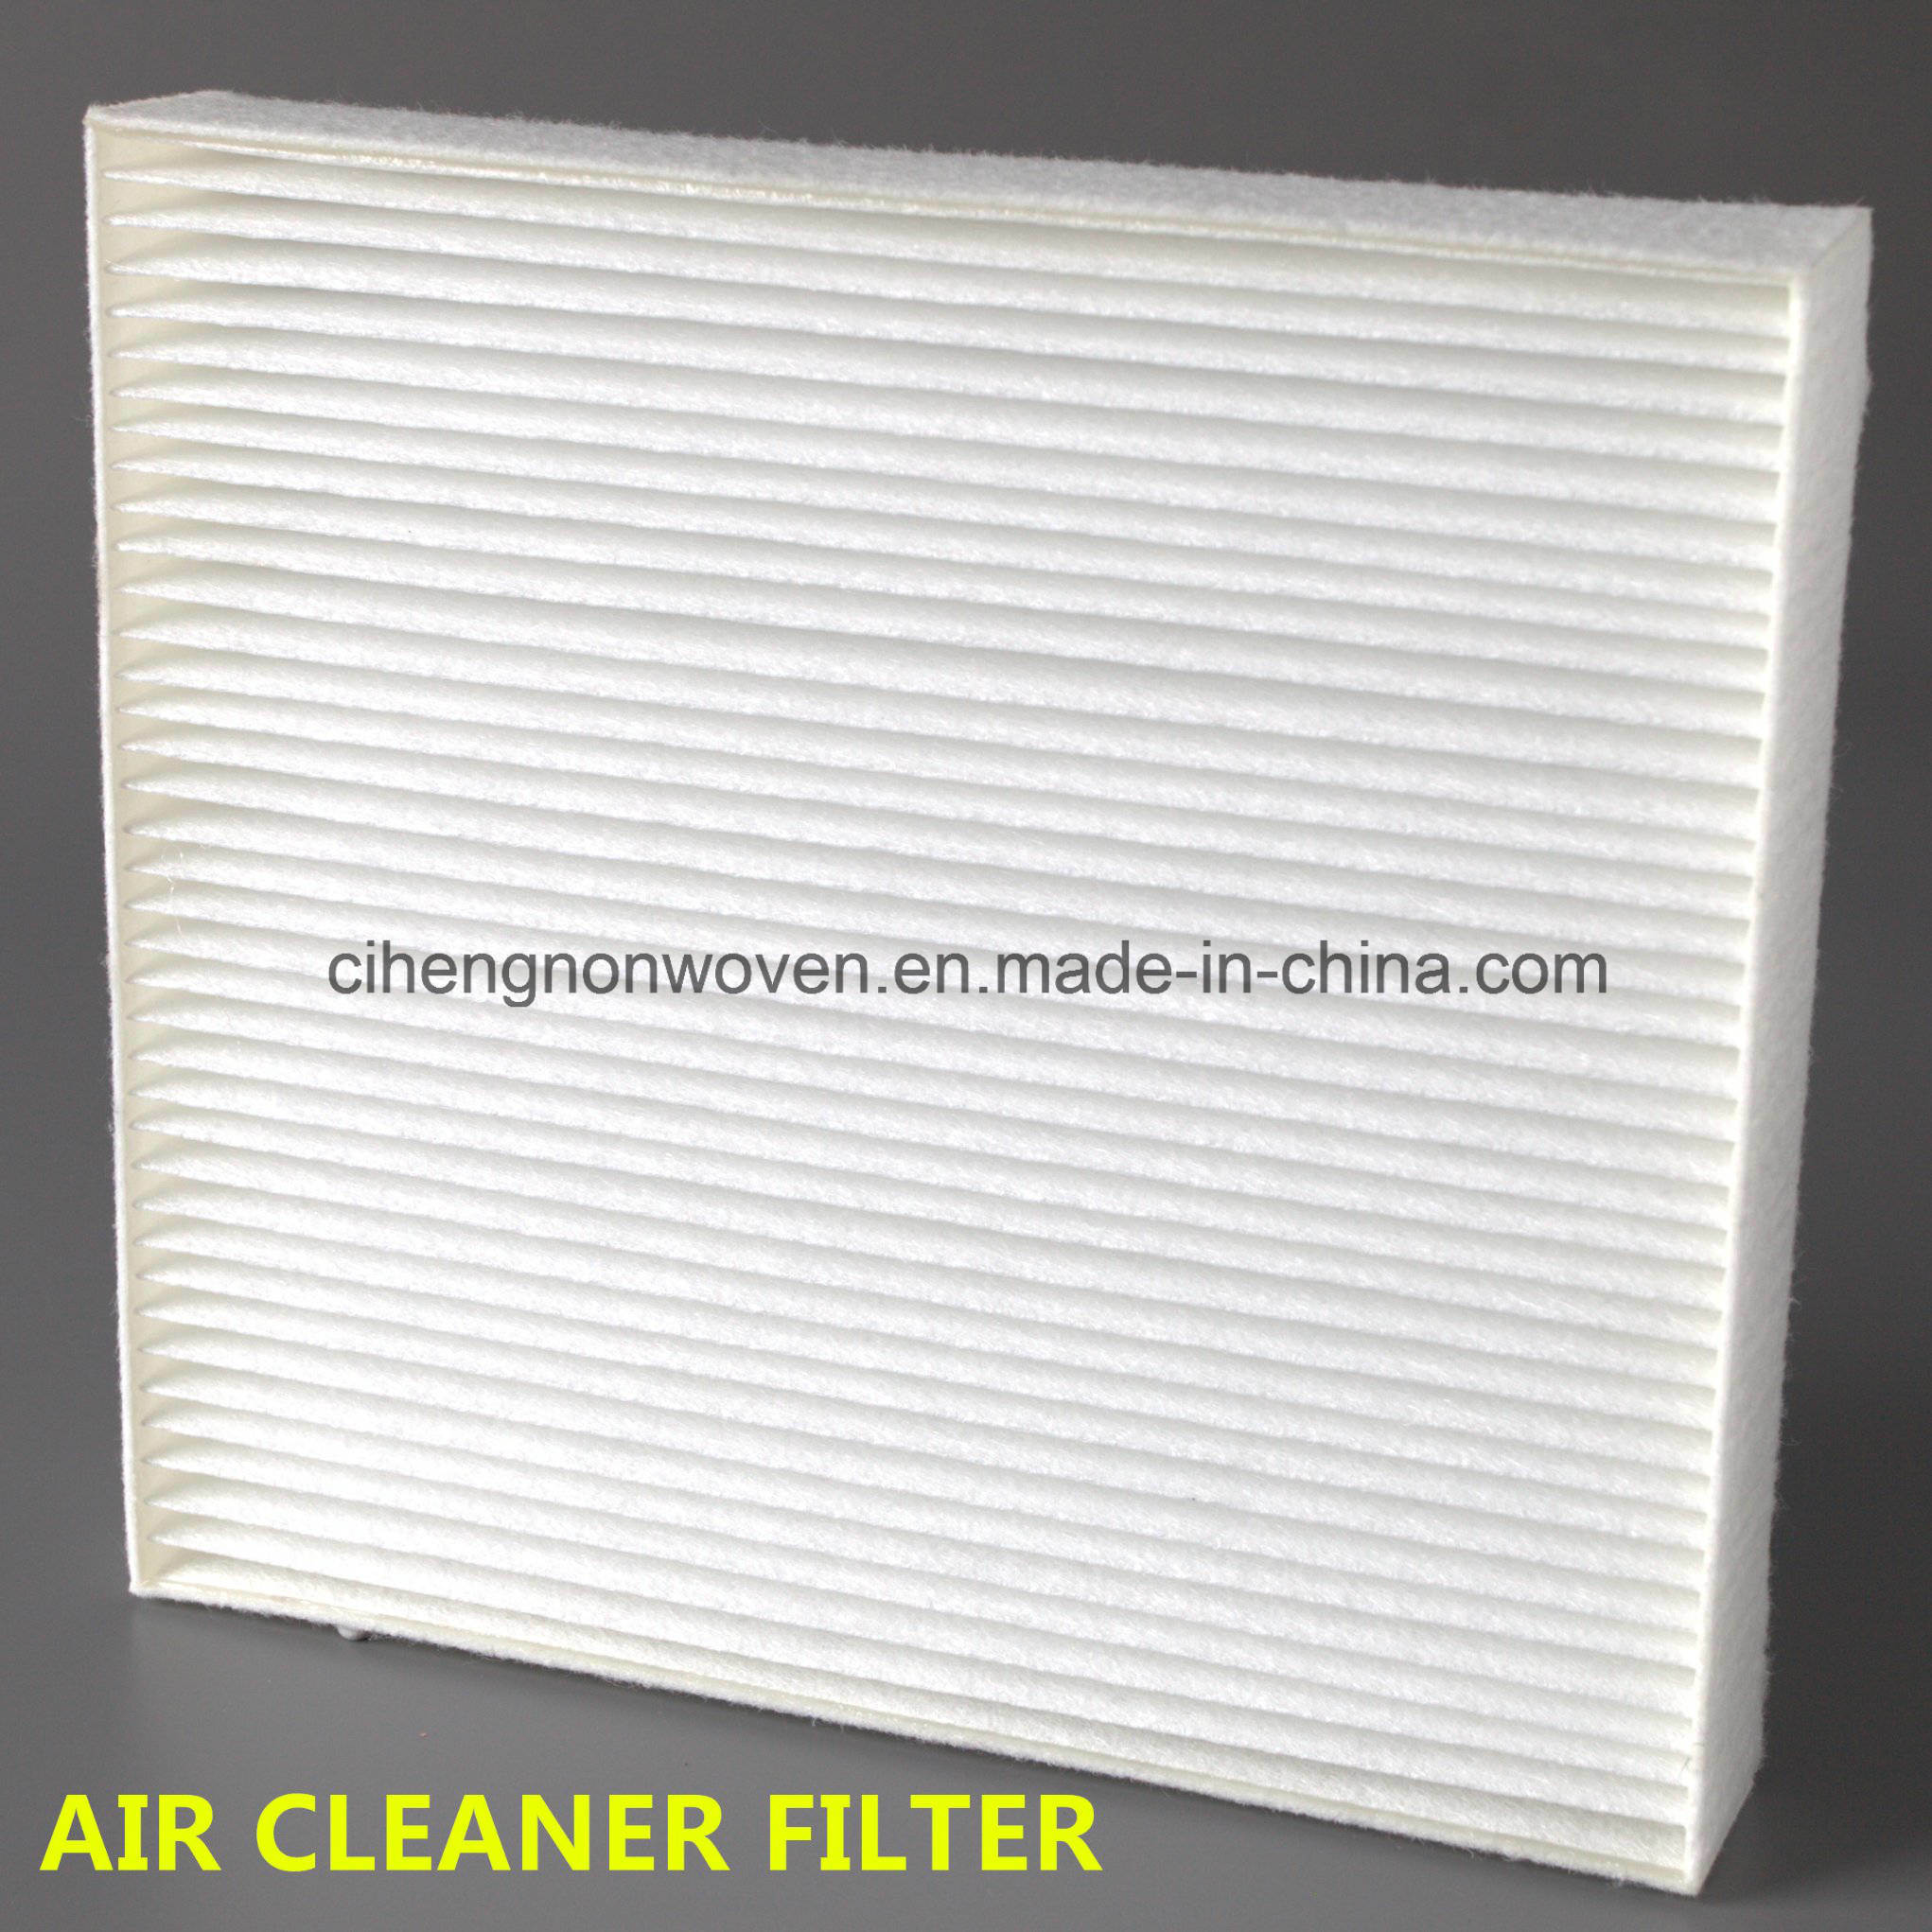 Laminated Melt-Blown Air Filter Media